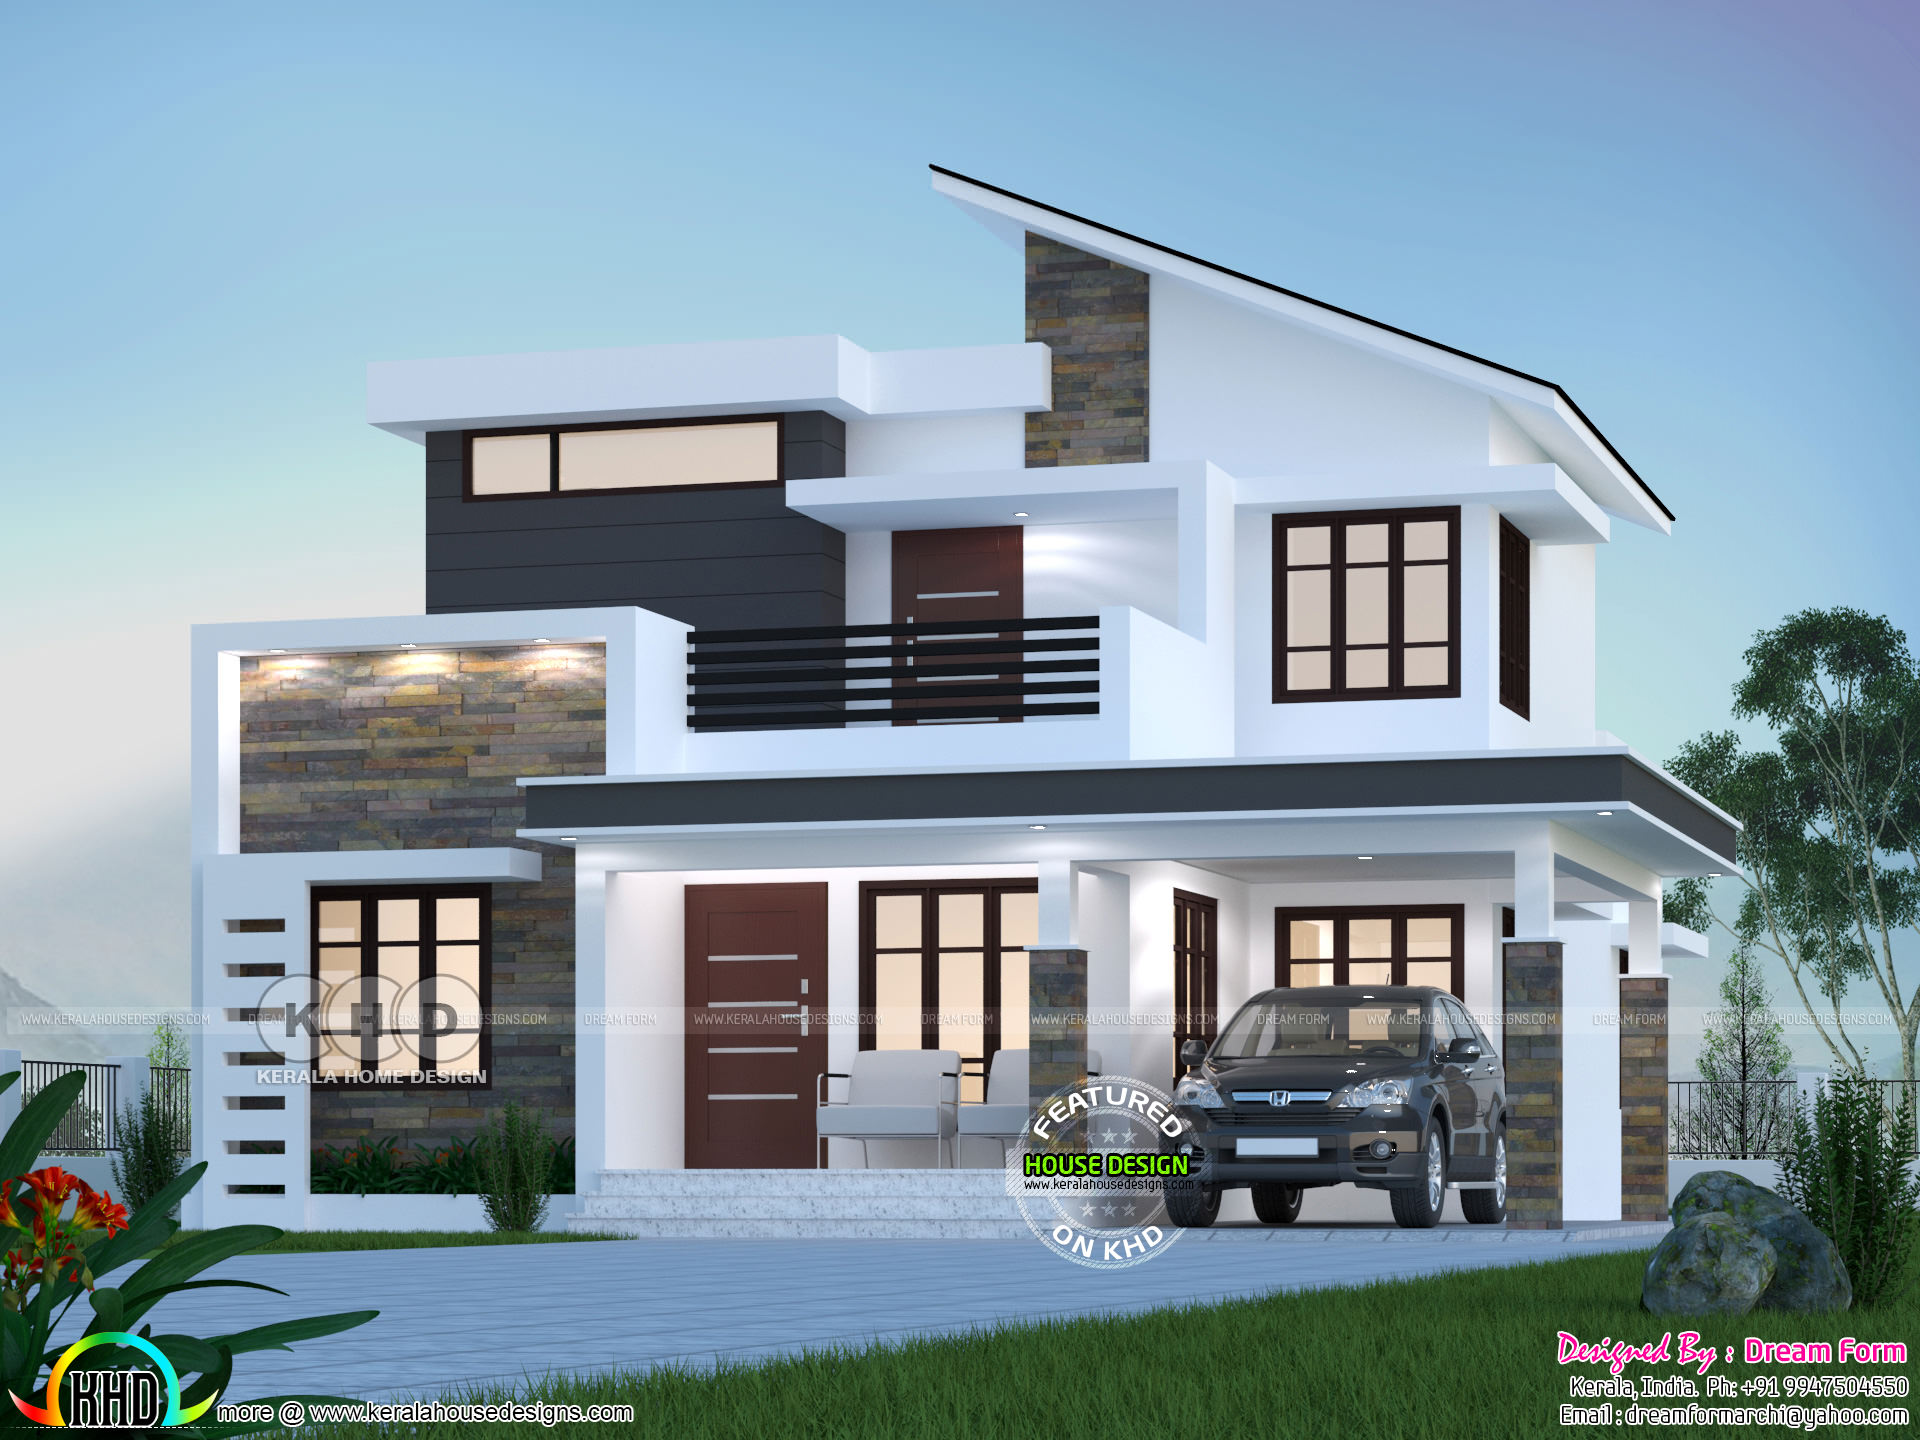 10 sq-ft 10 bedroom modern house plan - Kerala home design and